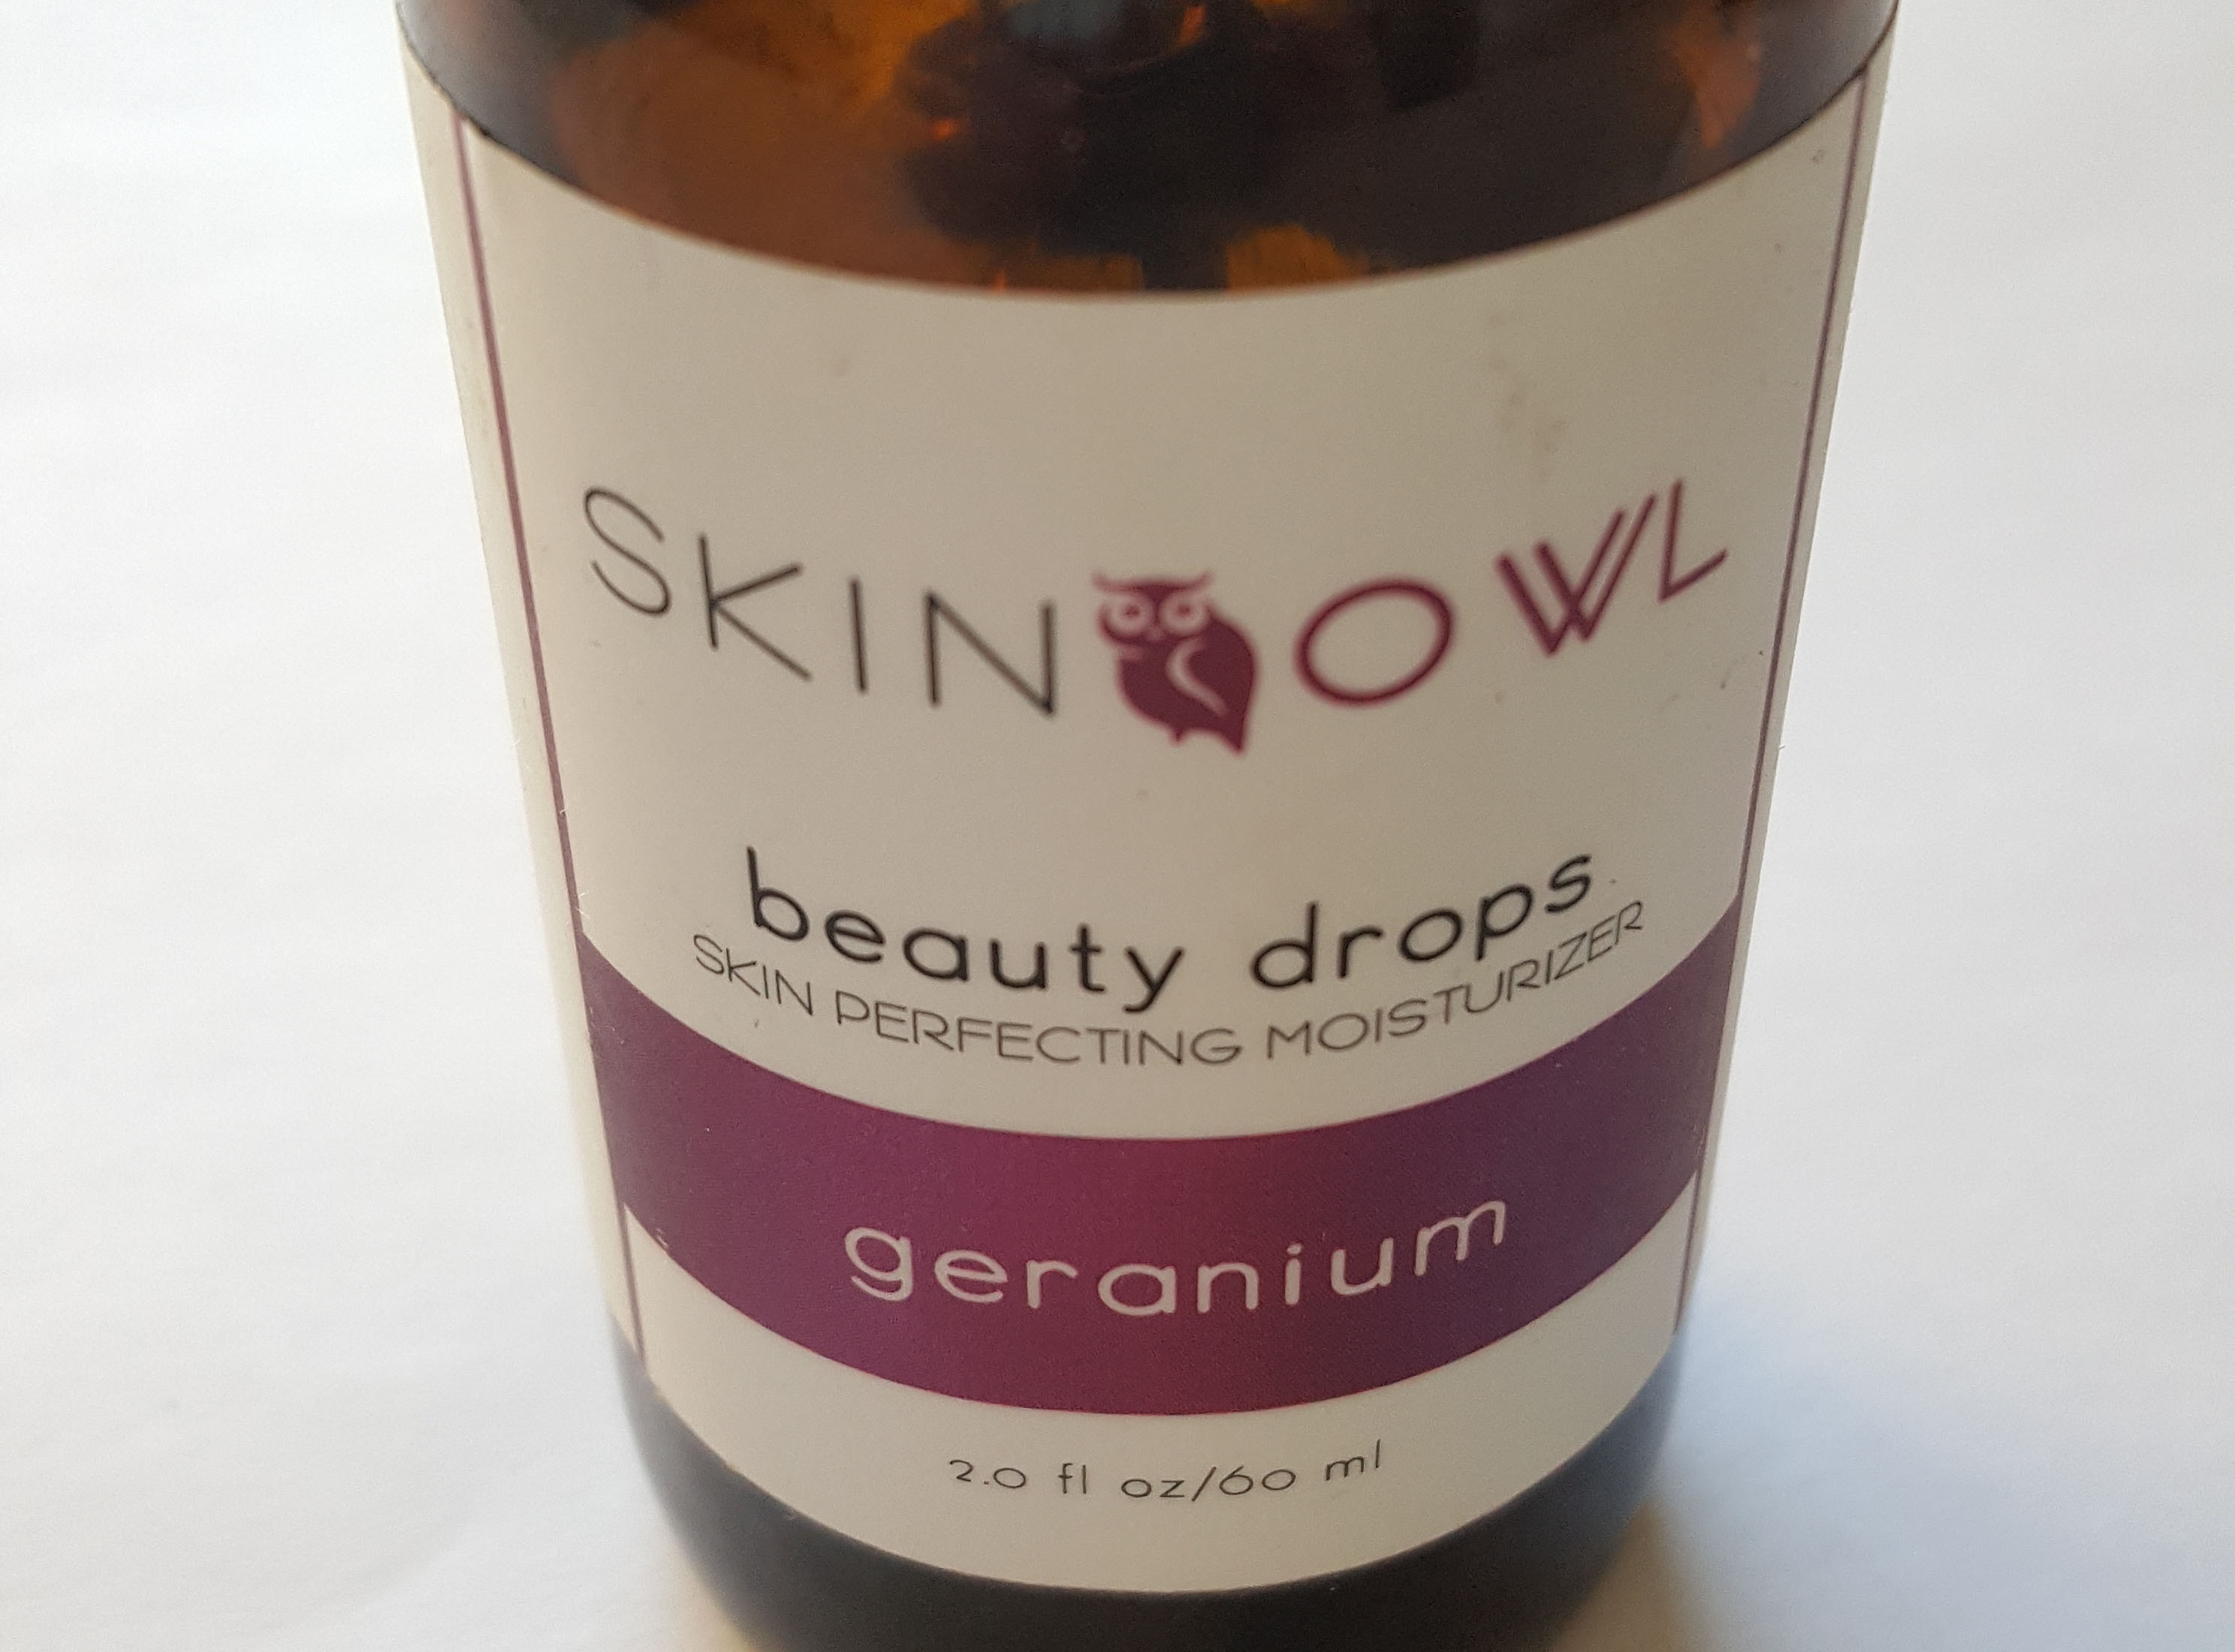 SkinOwl Geranium Beauty Drops – USED